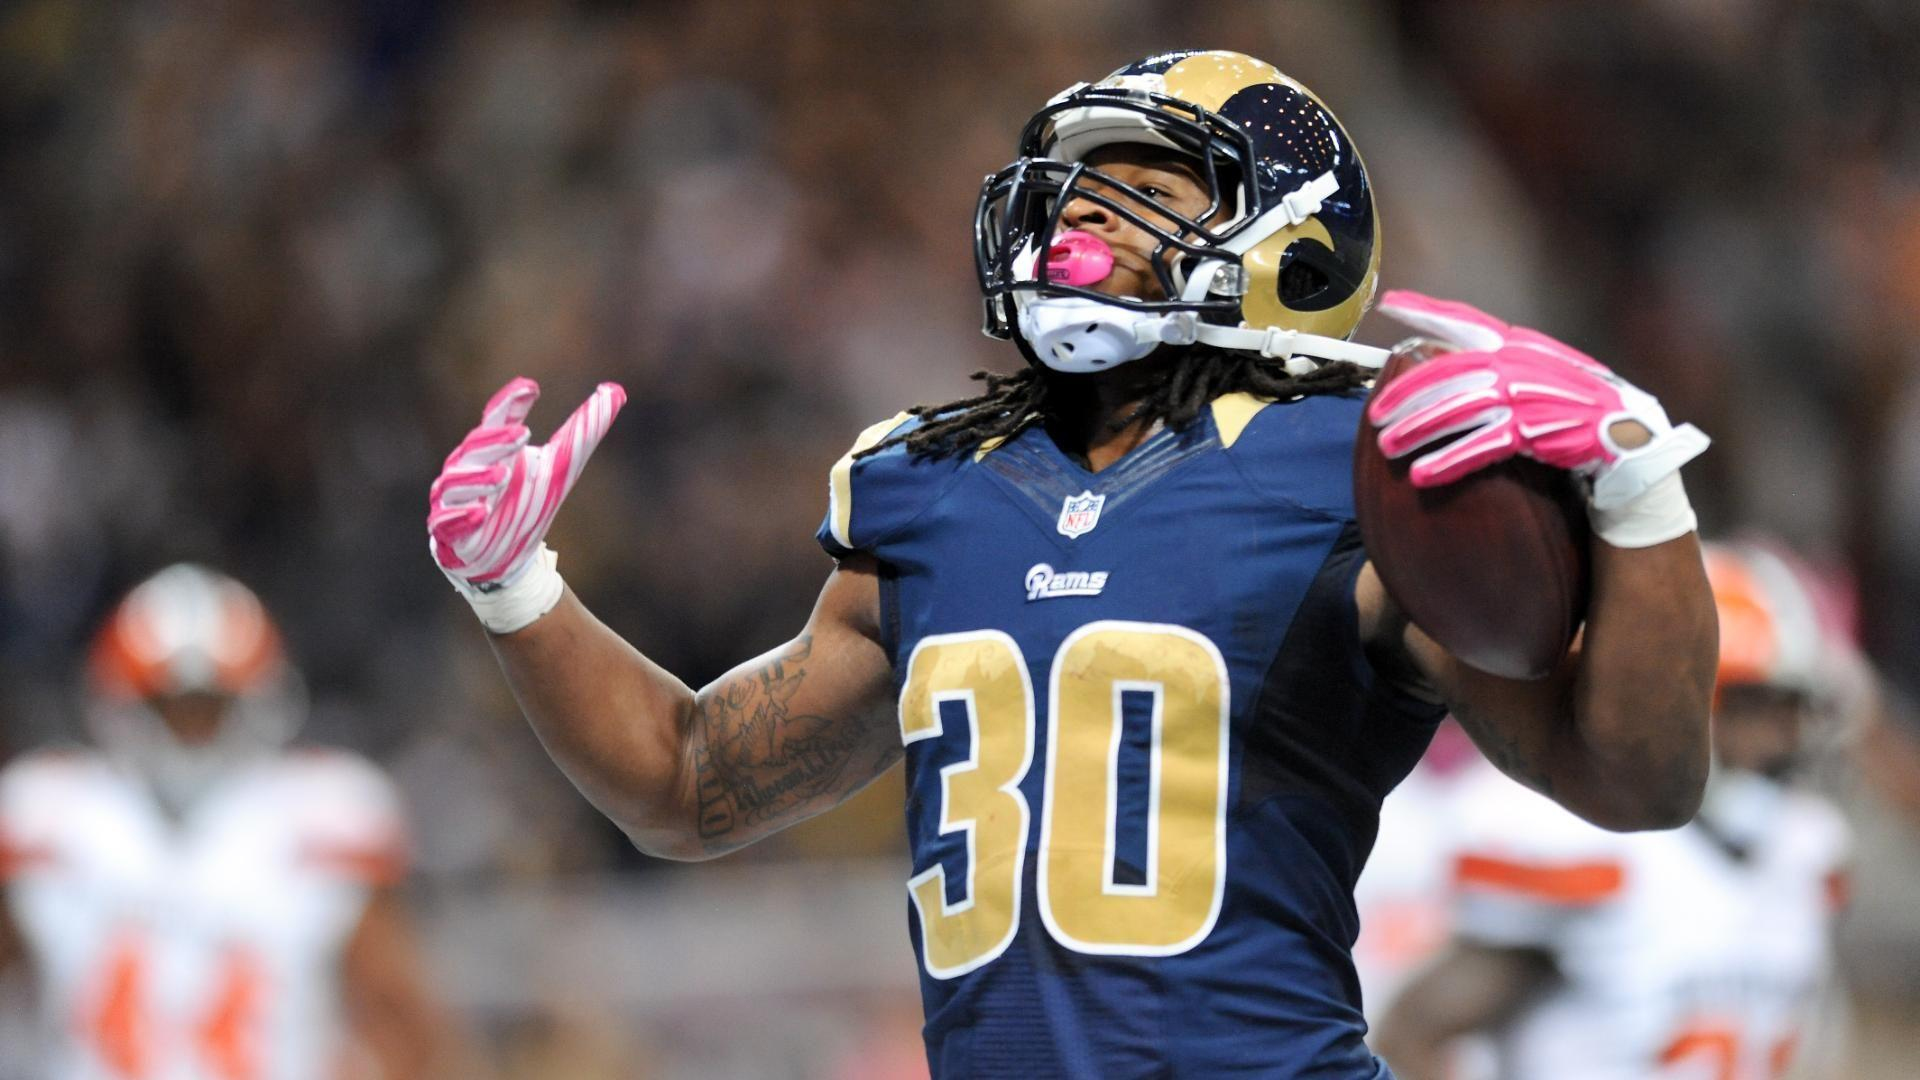 Todd Gurley gets game ball for closing out Cleveland